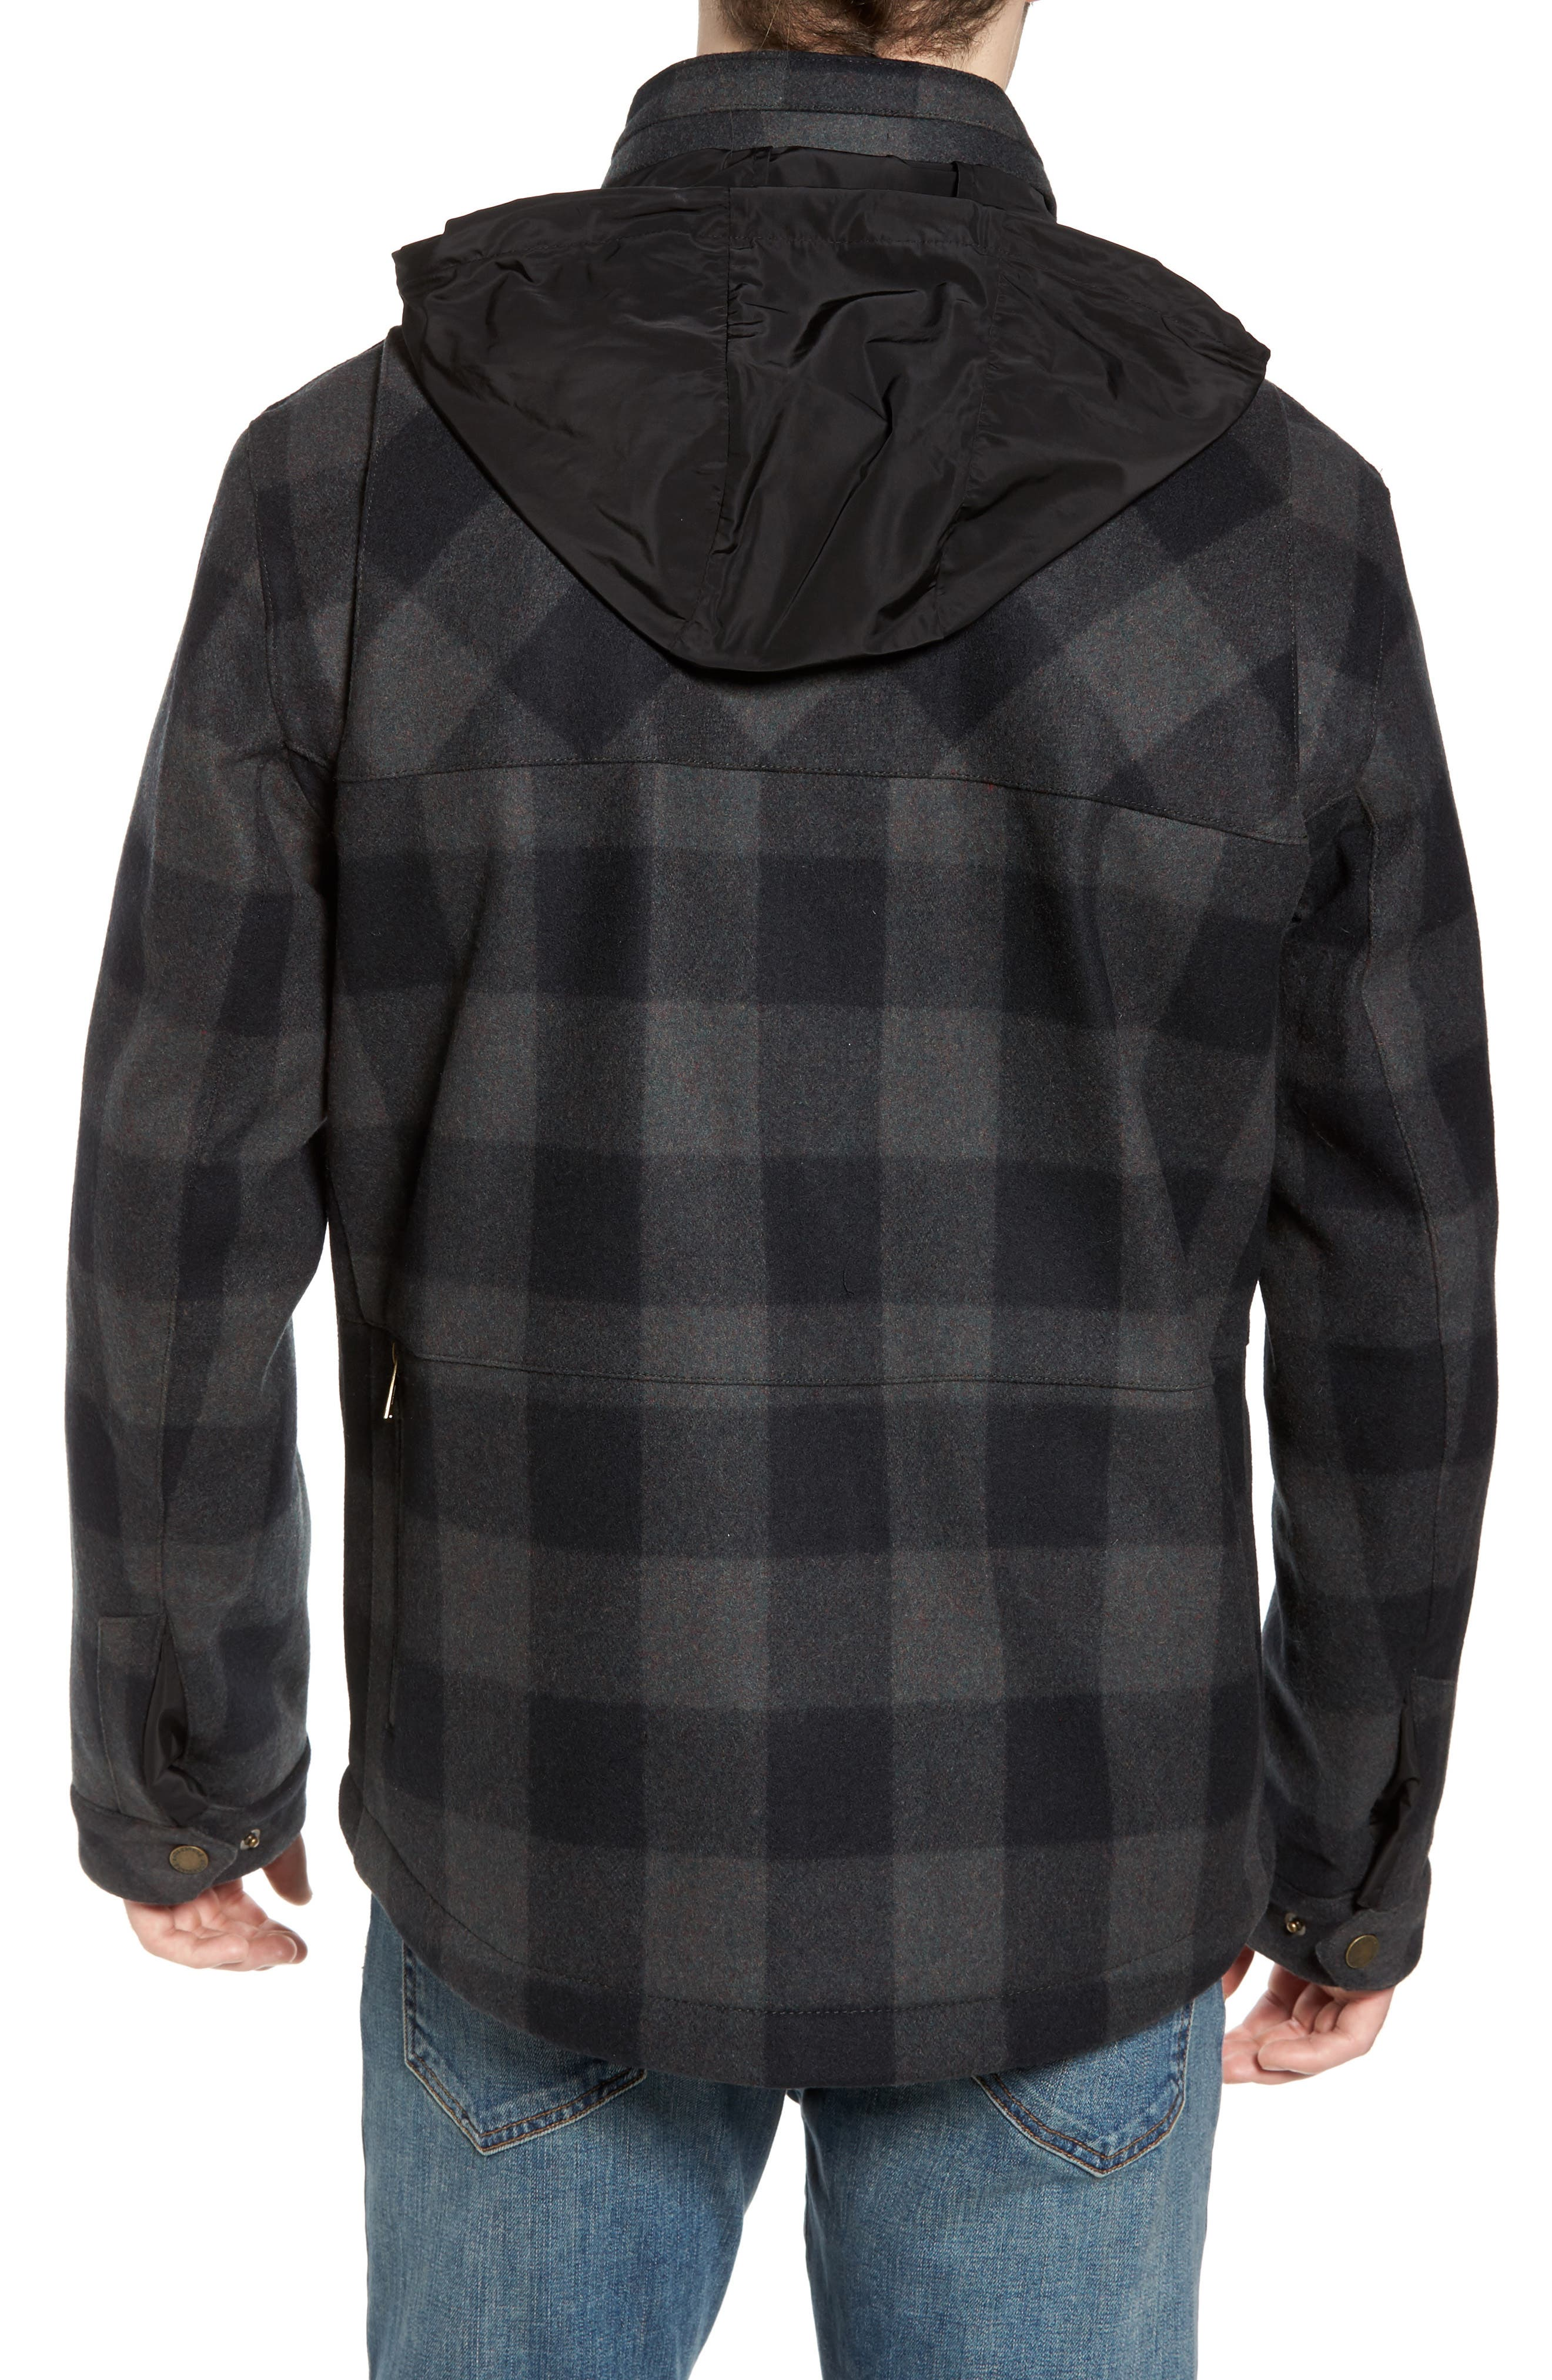 Albuquerque Jacket,                             Alternate thumbnail 2, color,                             Olive Buffalo Plaid